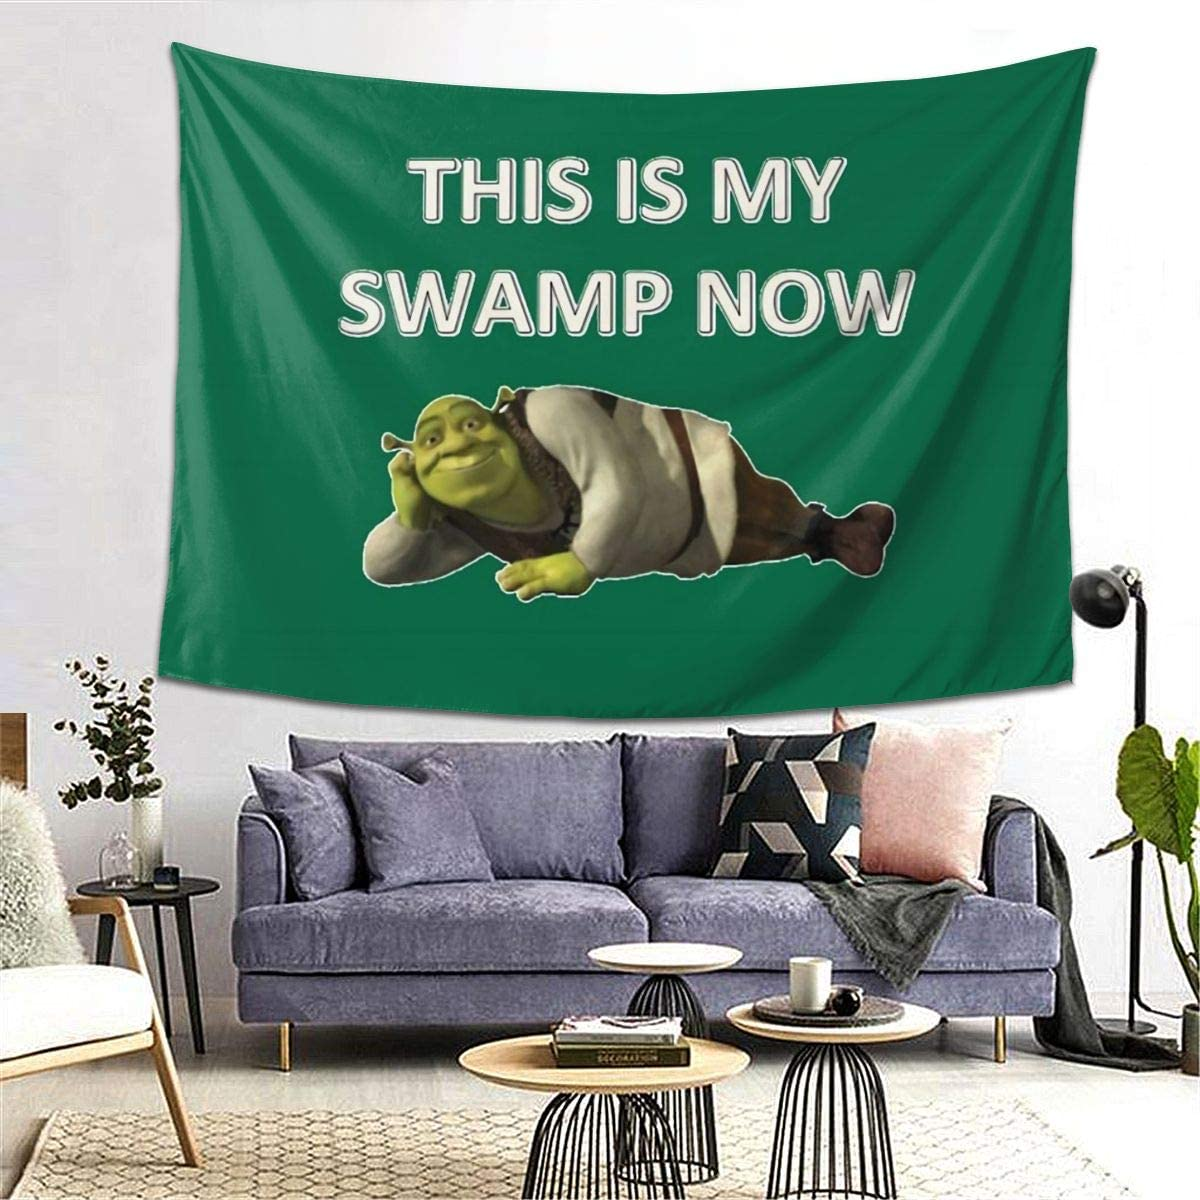 MOONSOON This is My Swamp Now Boutique Tapestry Wall Hanging Tapestry Vintage Tapestry Wall Tapestry Micro Fiber Peach Home Decor 60x80inch